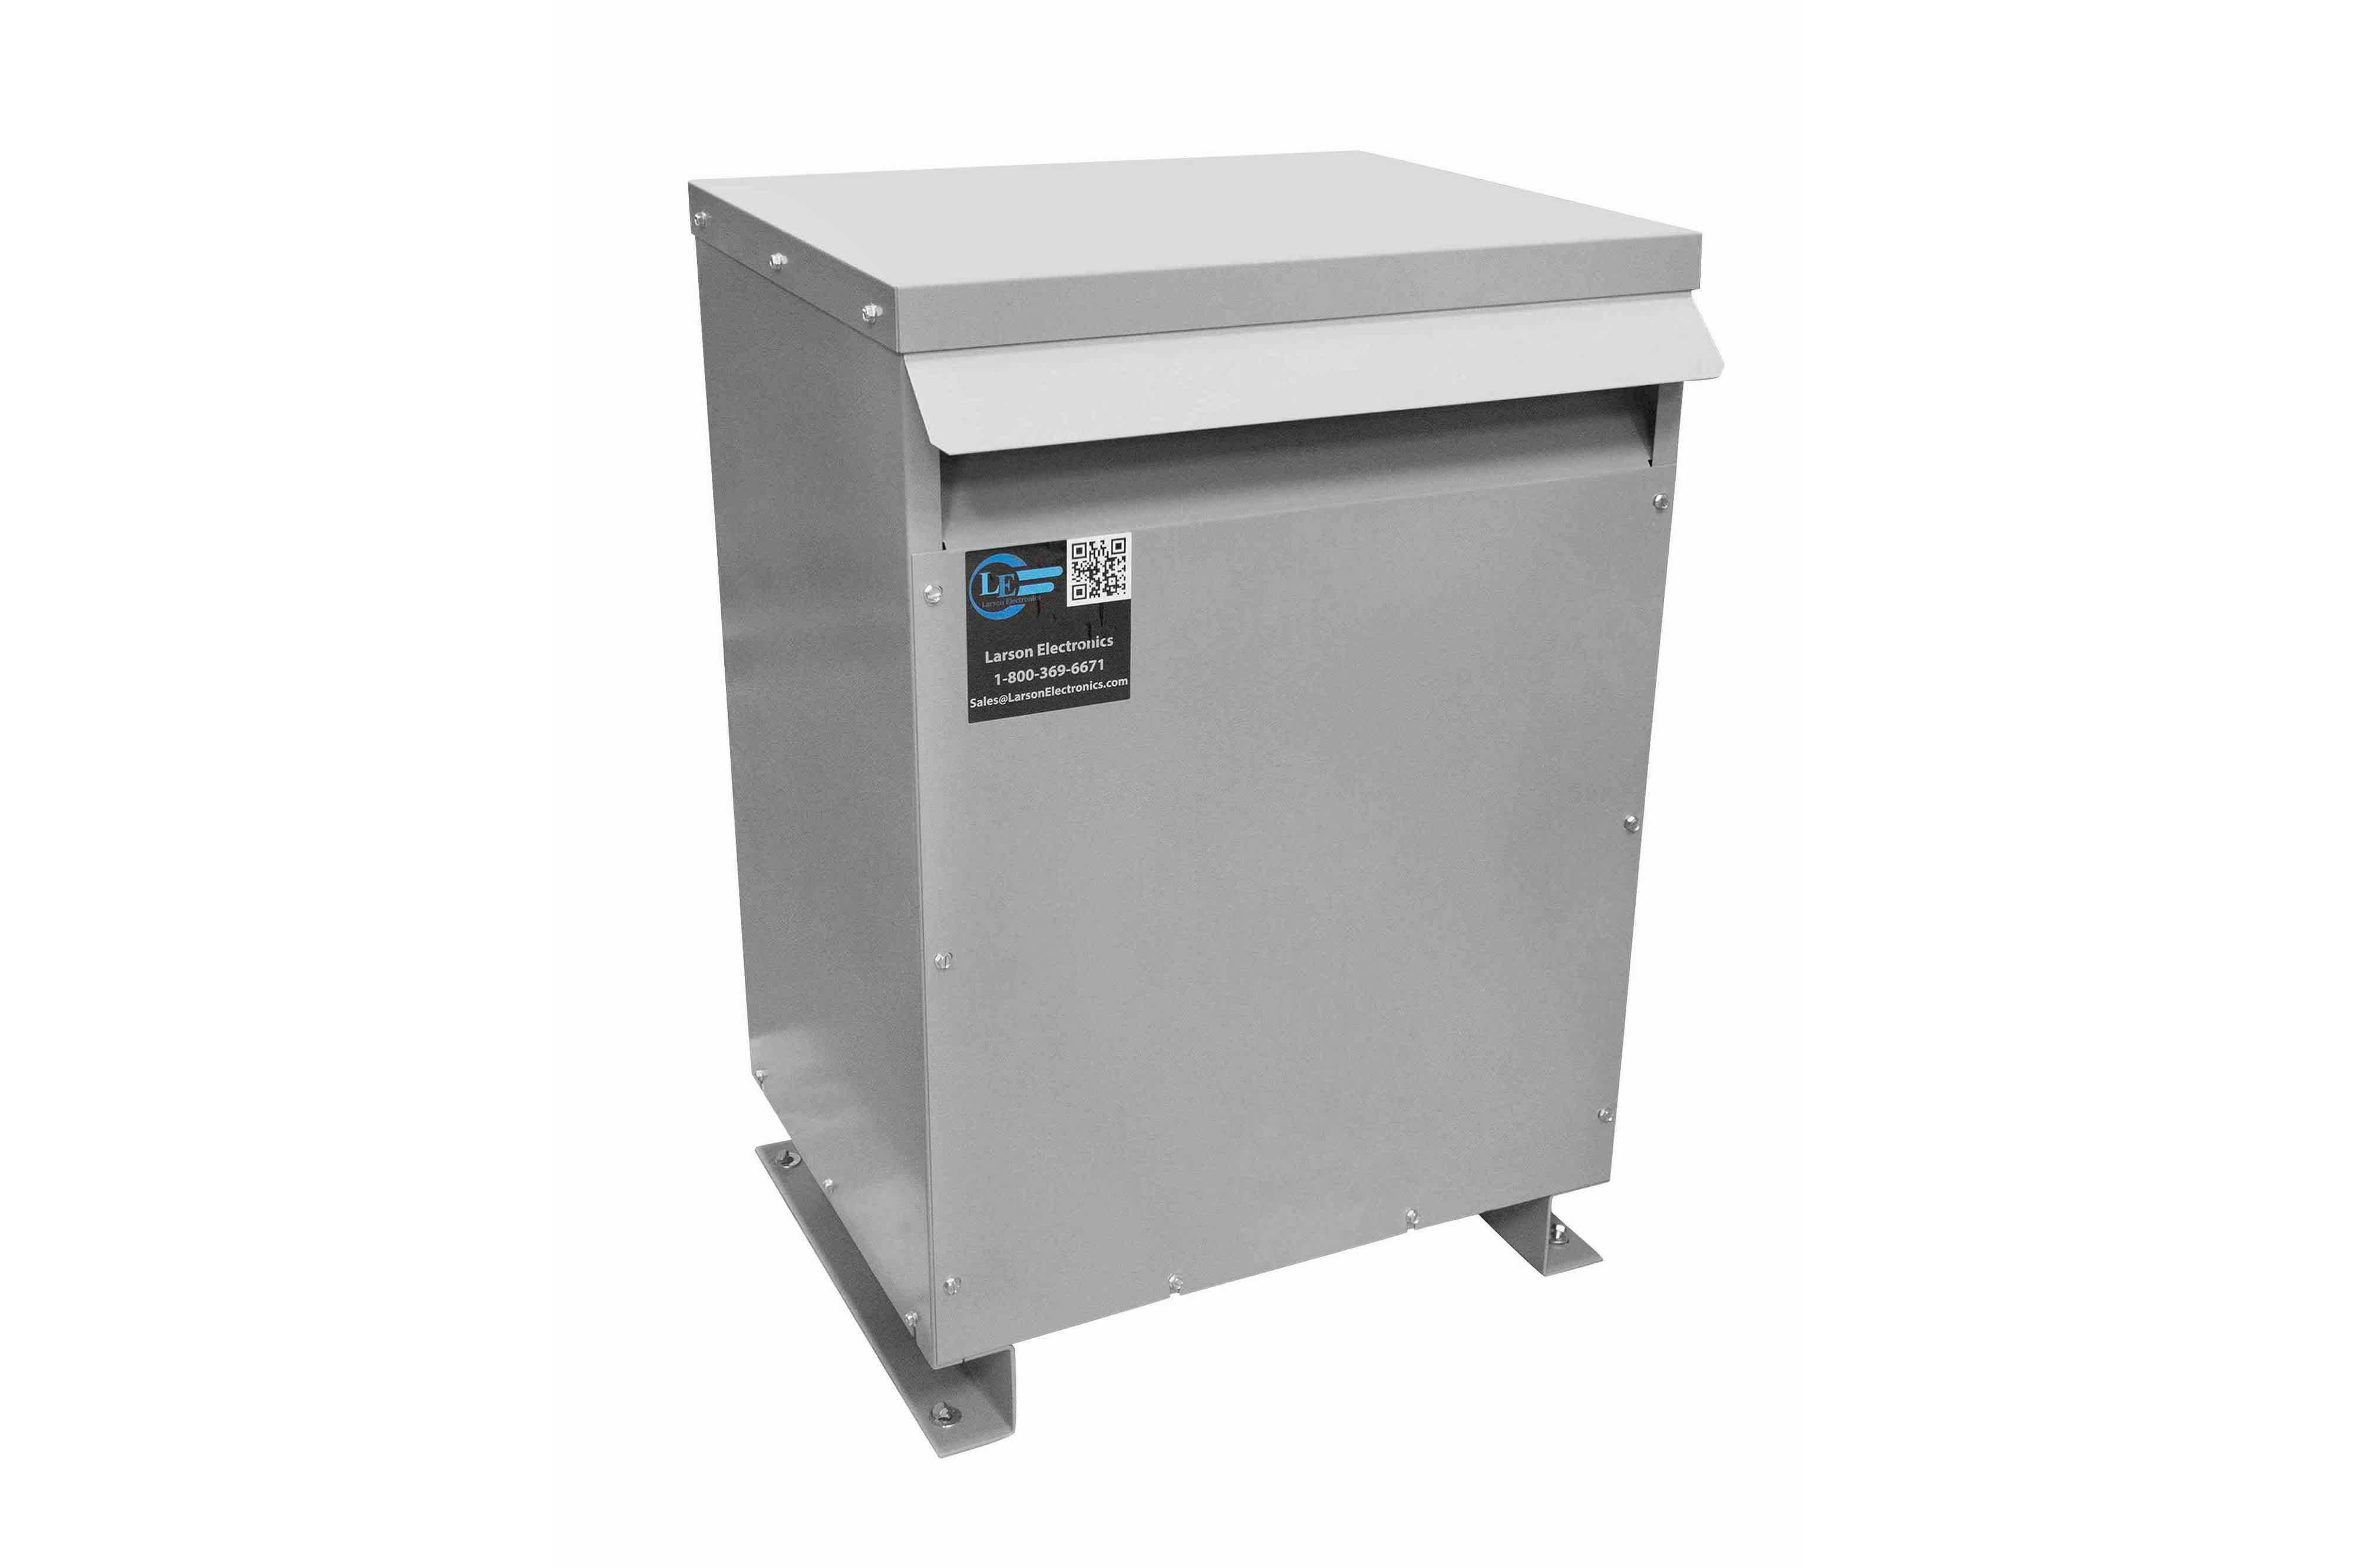 700 kVA 3PH Isolation Transformer, 600V Wye Primary, 480Y/277 Wye-N Secondary, N3R, Ventilated, 60 Hz